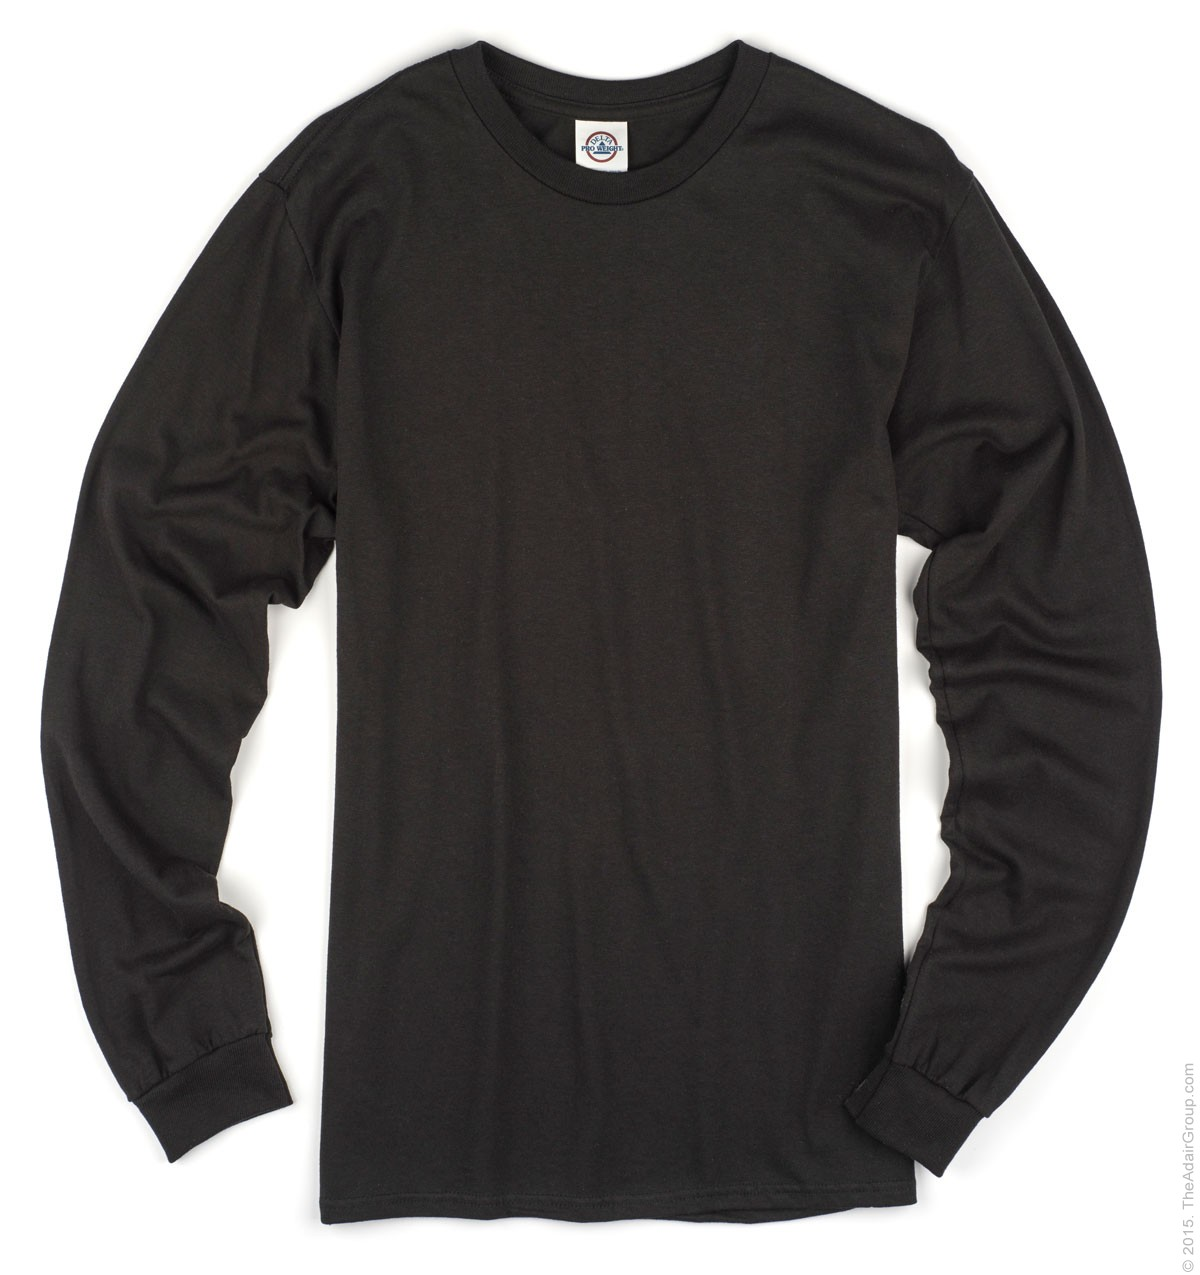 1 Wholesale Long Sleeve T-Shirts - Cheap Prices